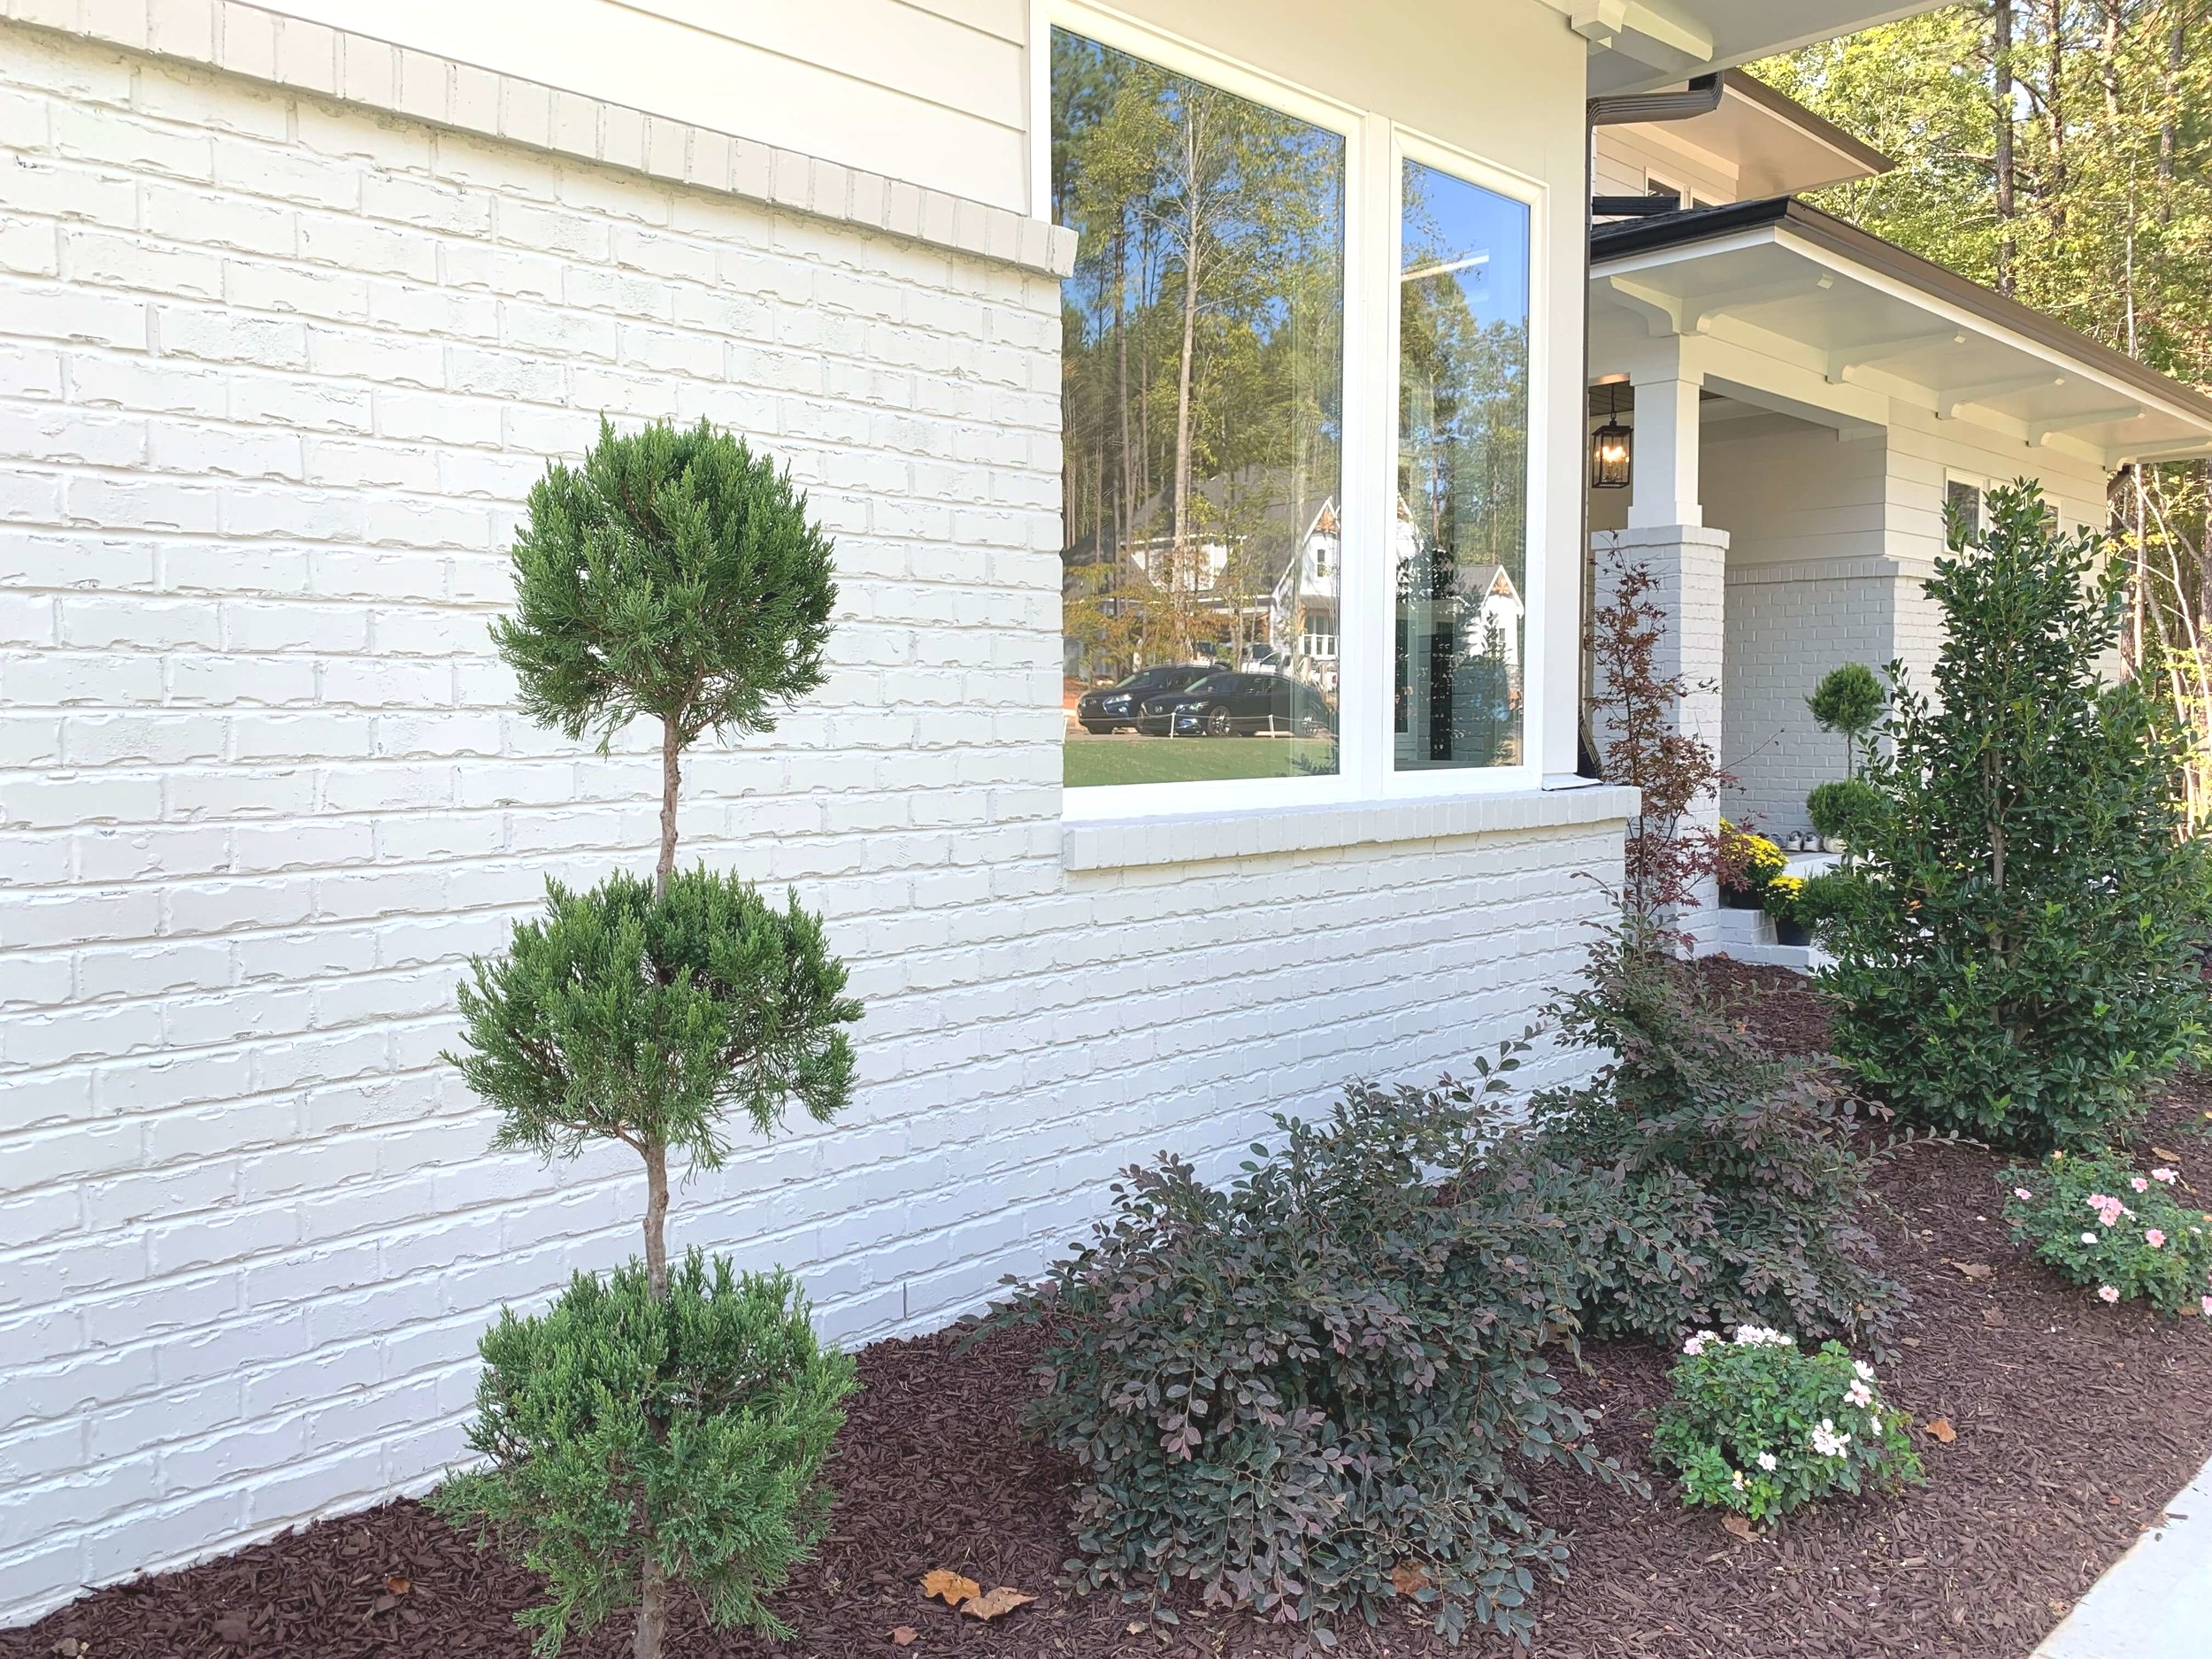 Painted brick is a big trend right now and it looks great.